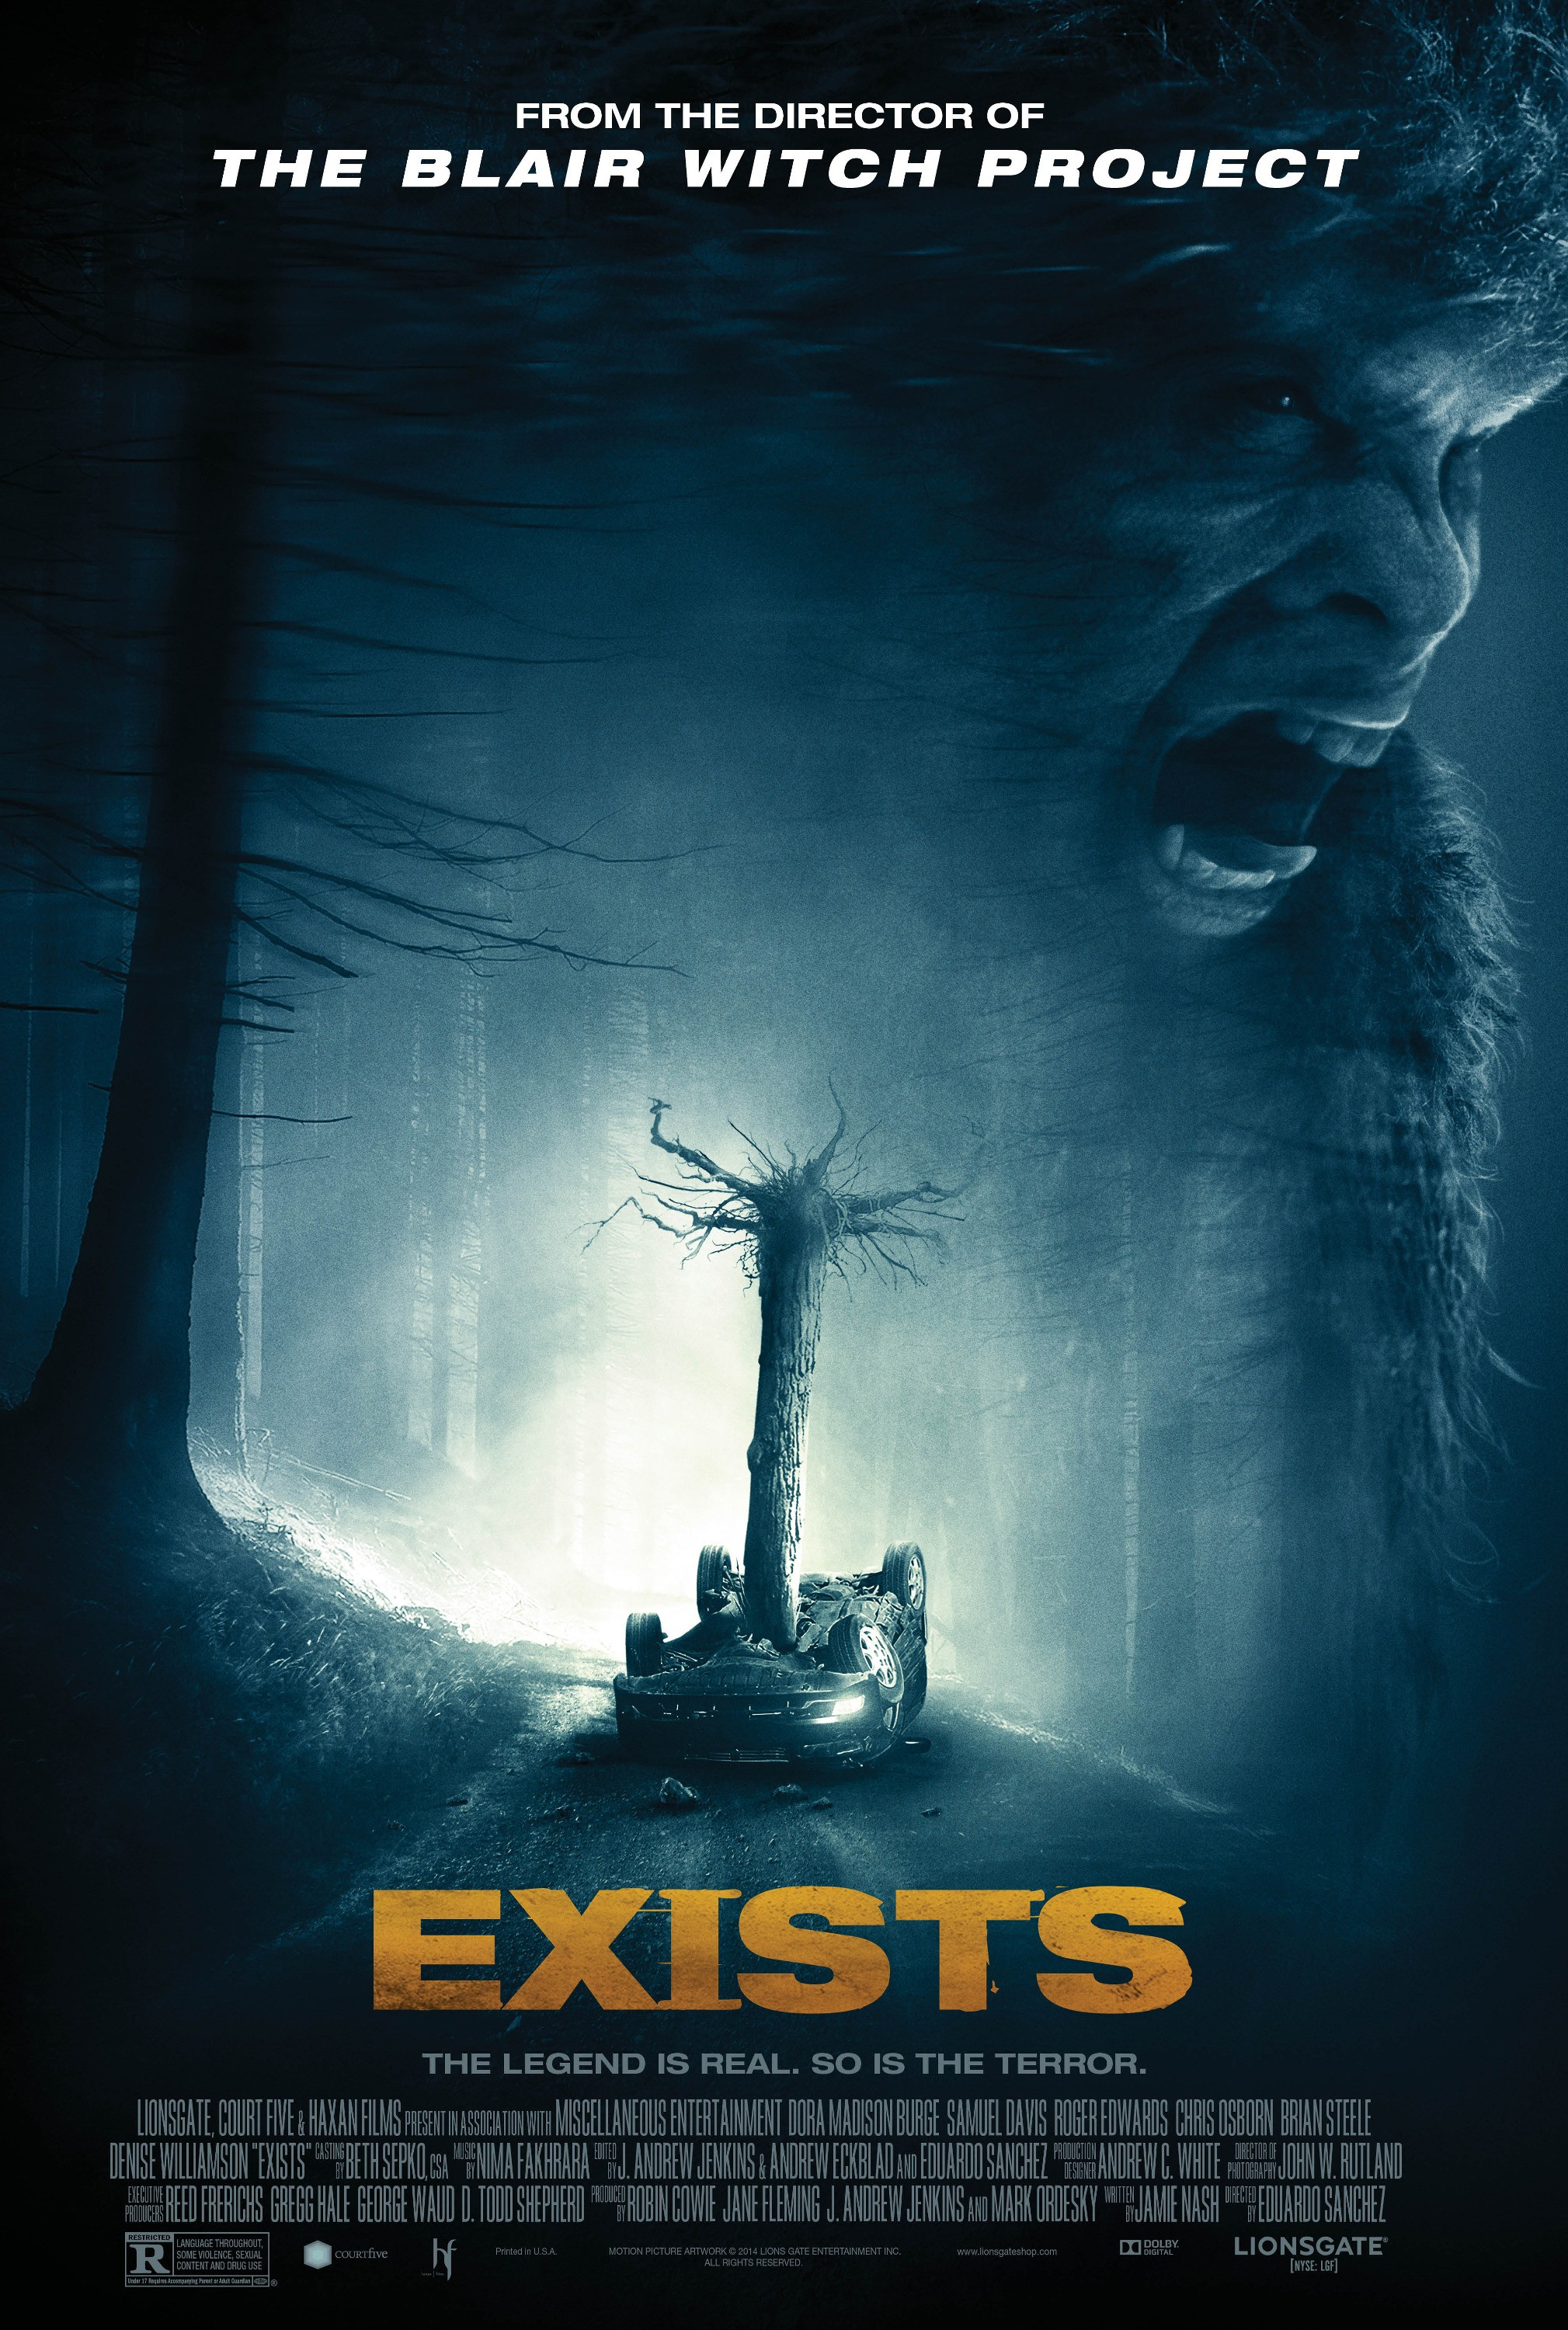 Exists-Official Poster Banner PROMO XXLG-28AGOSTO2014